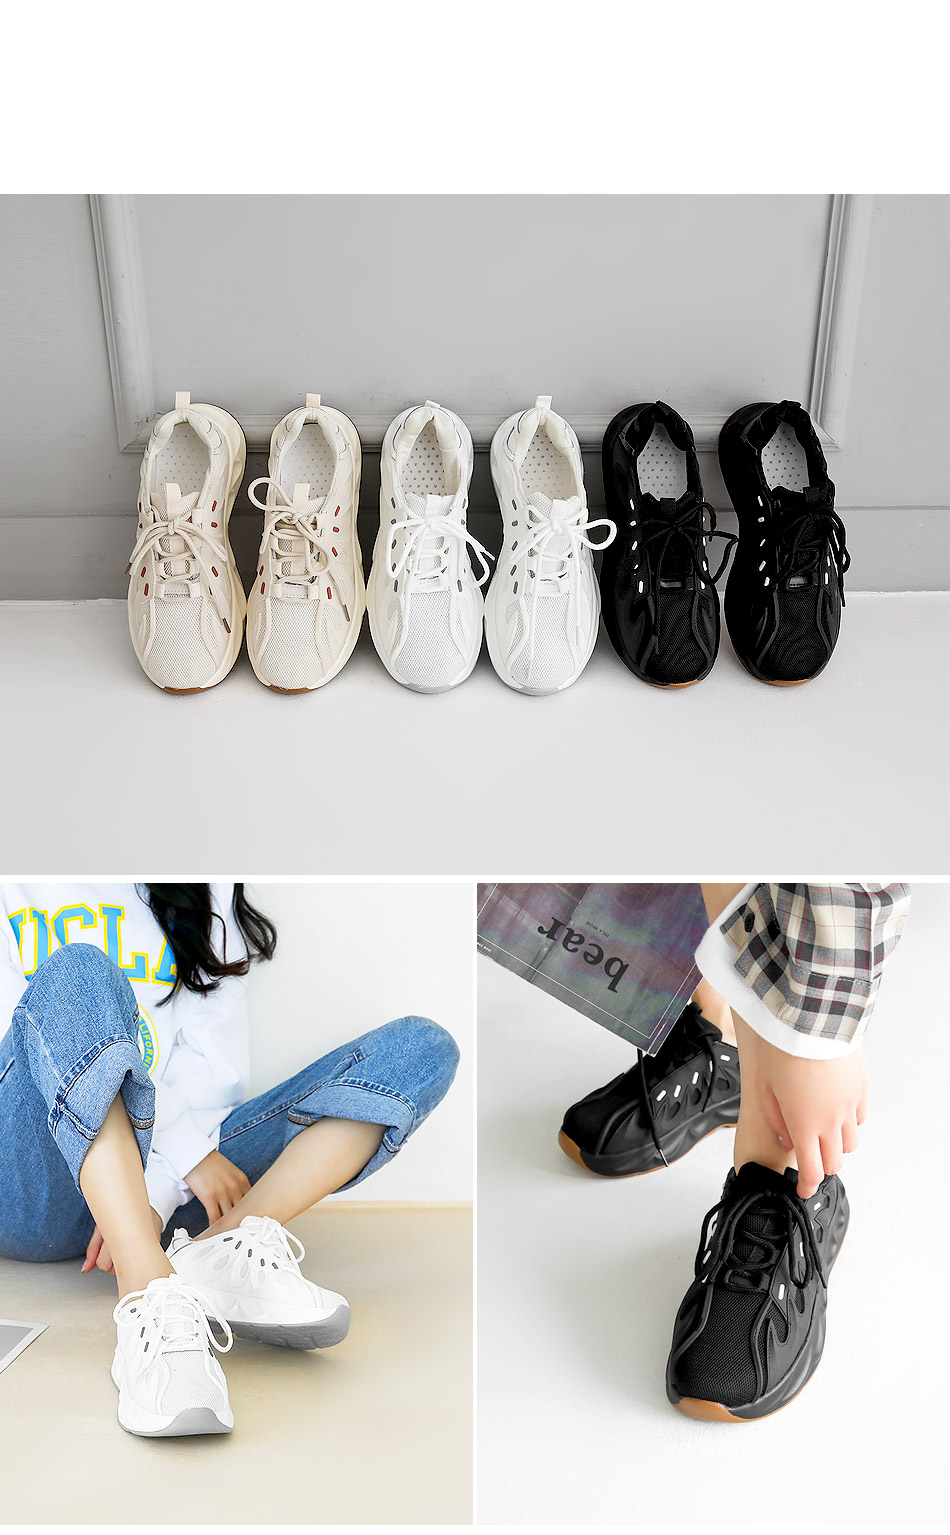 Pleated sneakers 4cm